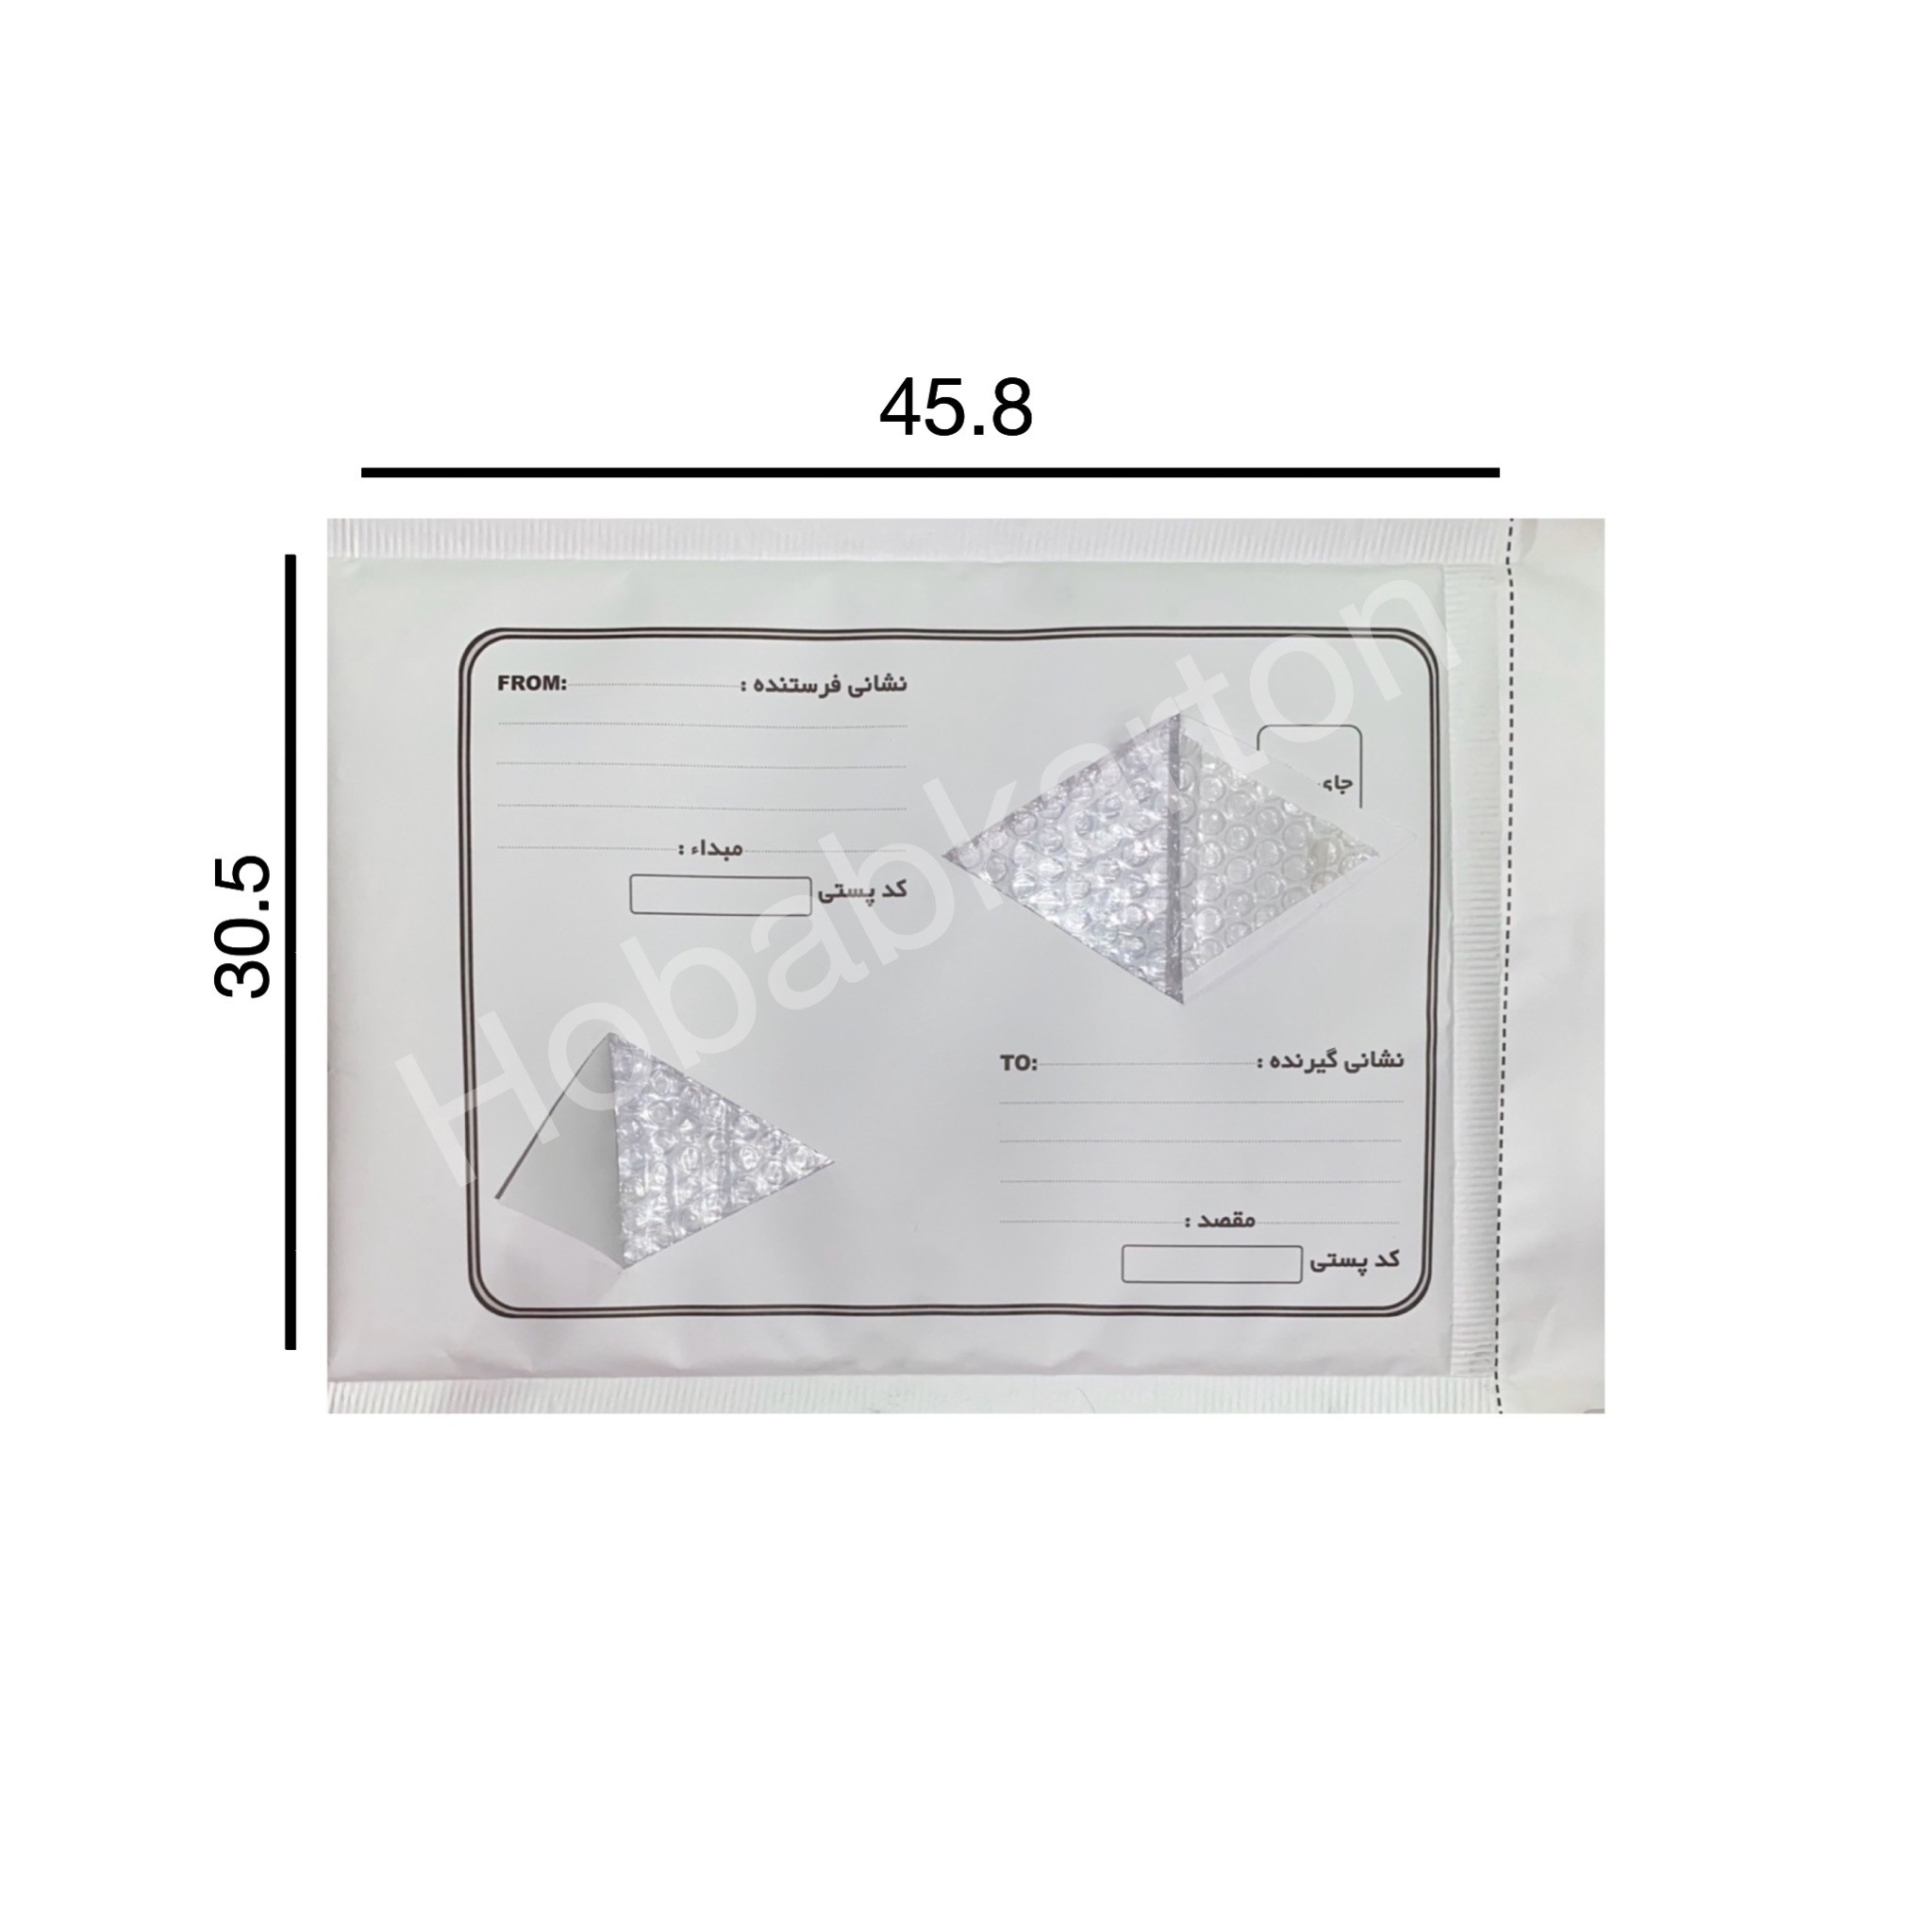 products  Postal envelope bubble model code 203 size A3